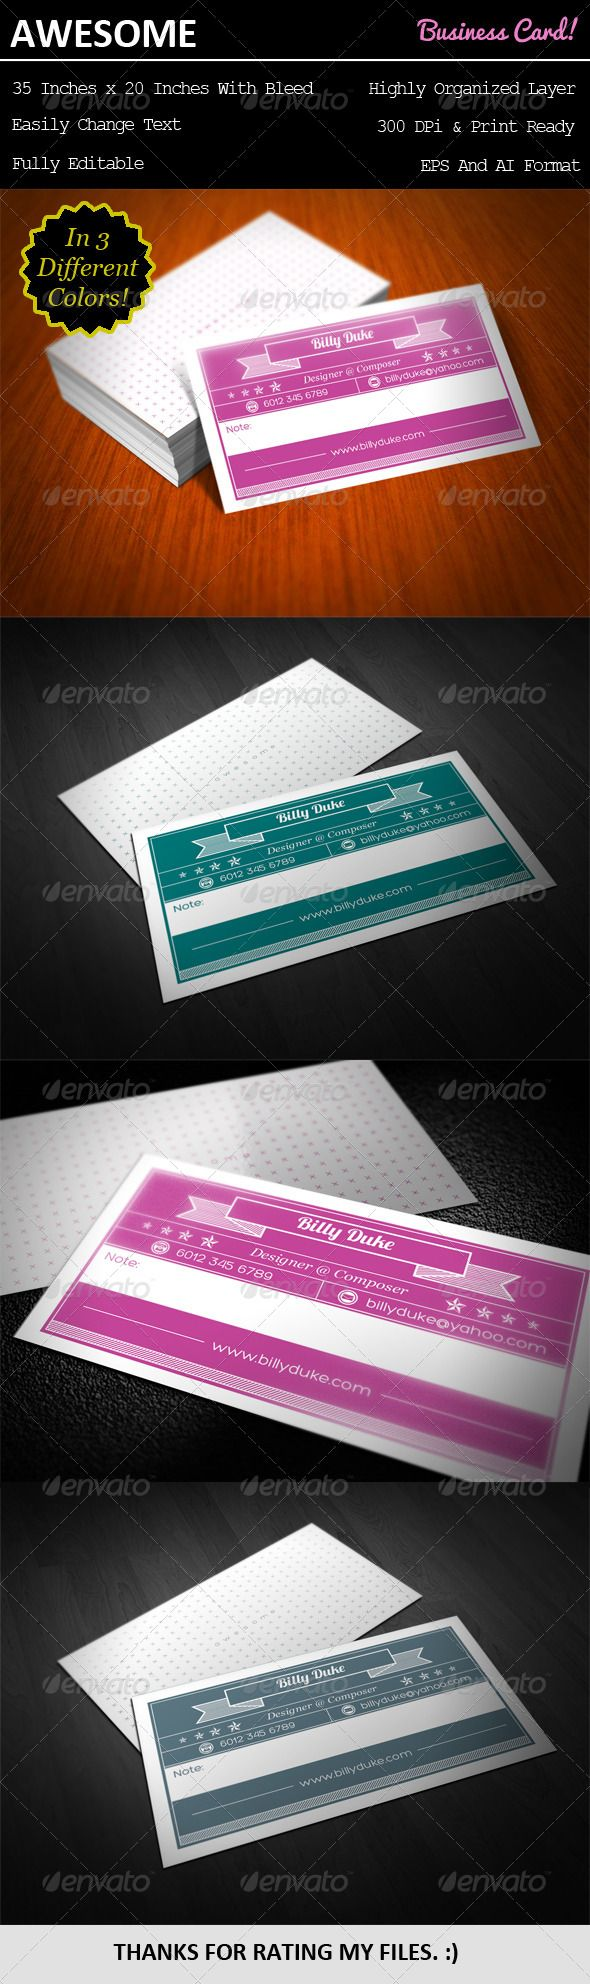 Awesome Business Card   Business, Cards and Awesome business cards